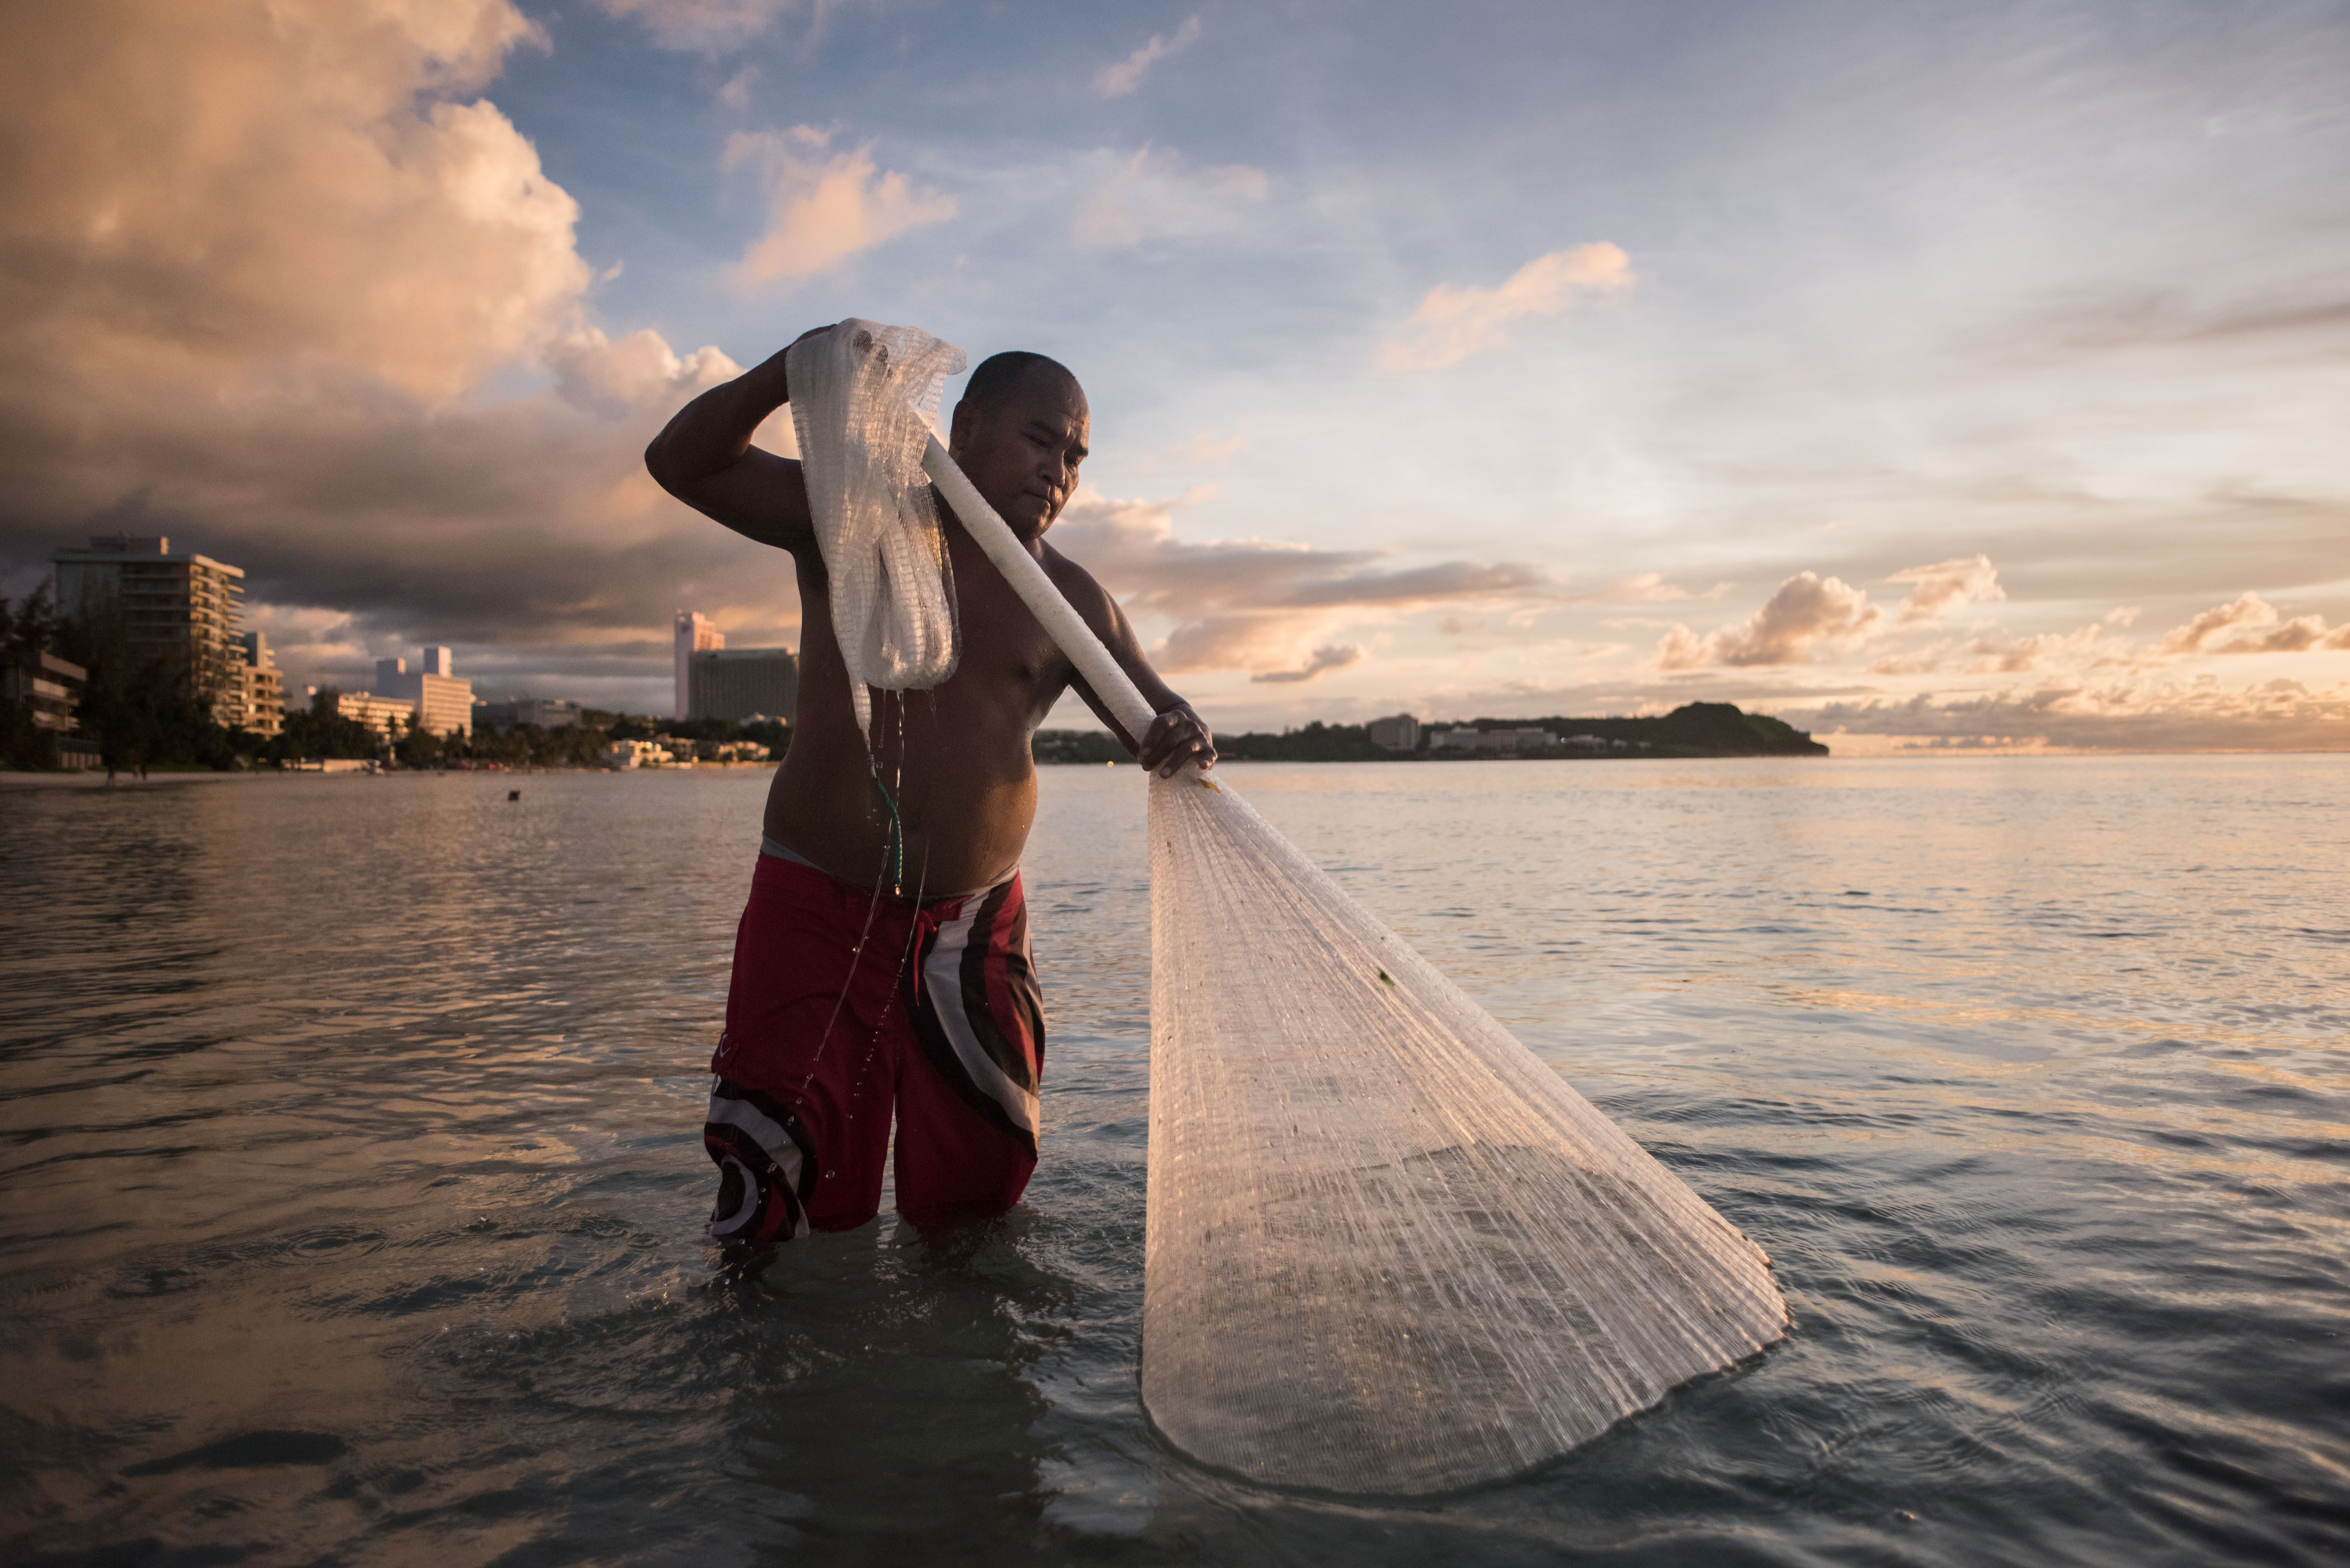 This photograph taken on August 12, 2017, shows a fisherman catching 'goat fish' off a beach at Tumon Bay in Guam.